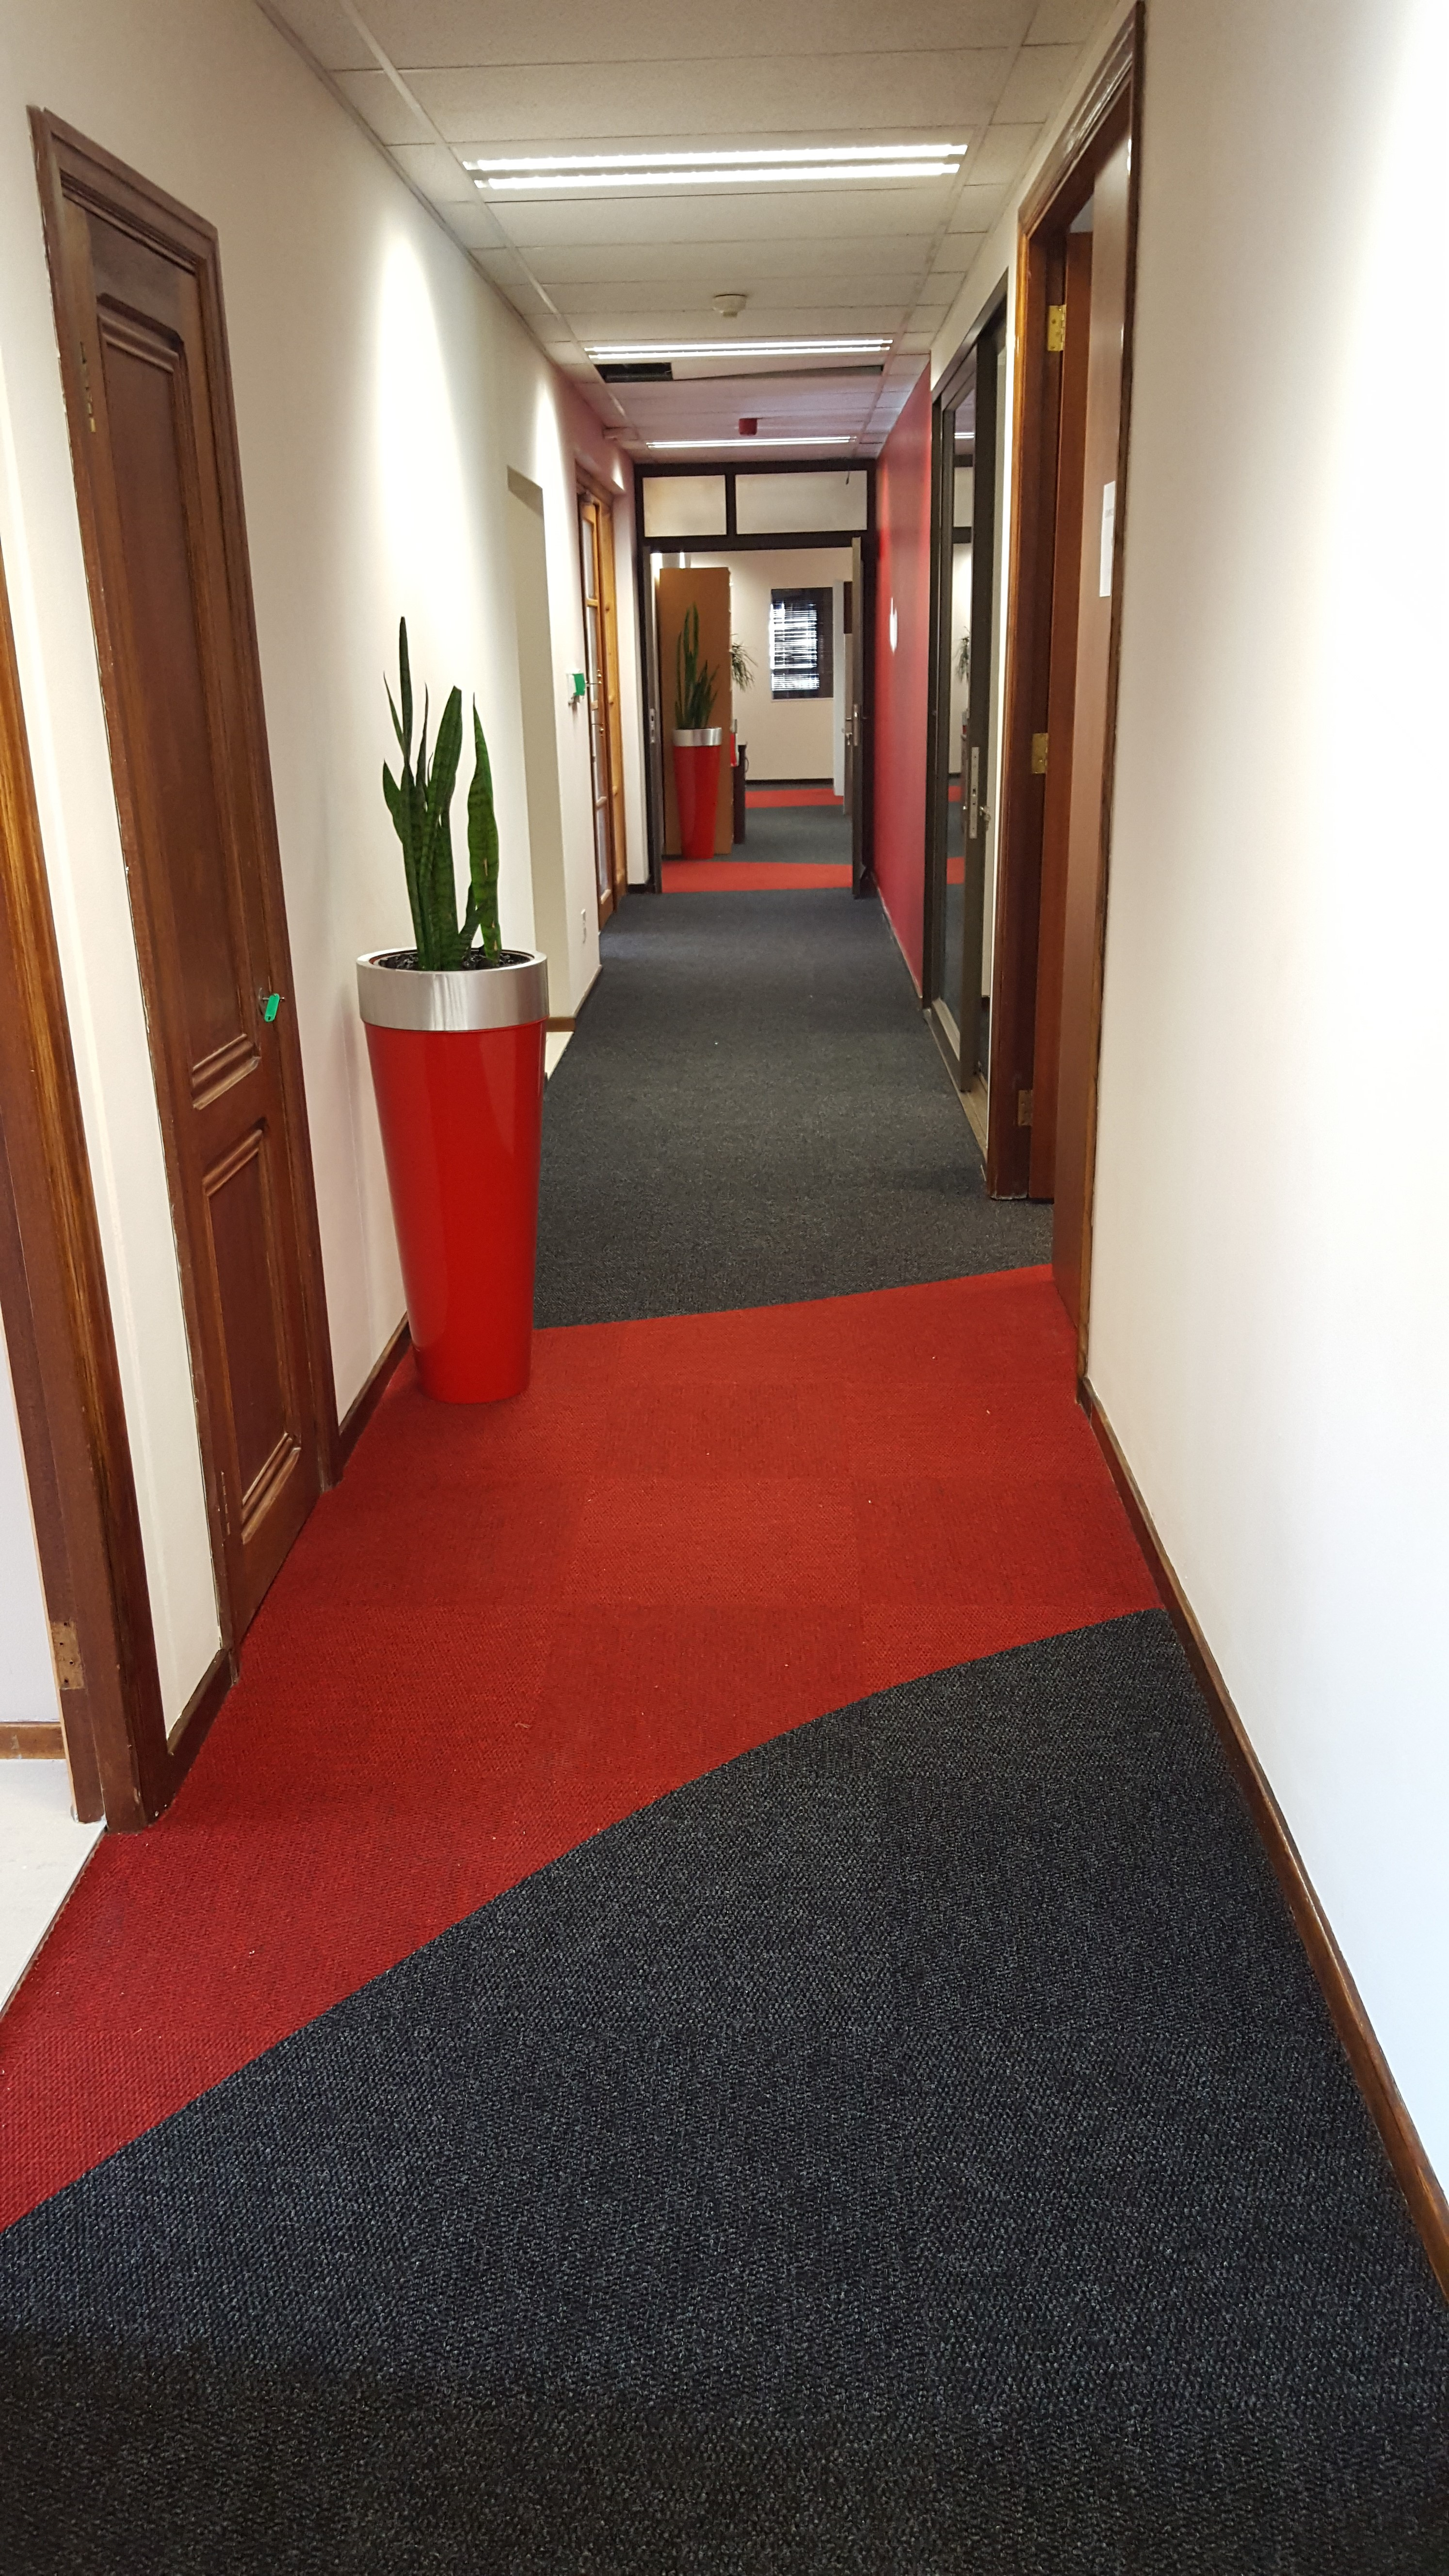 Design in Berberpoint 920 Carpet Tiles